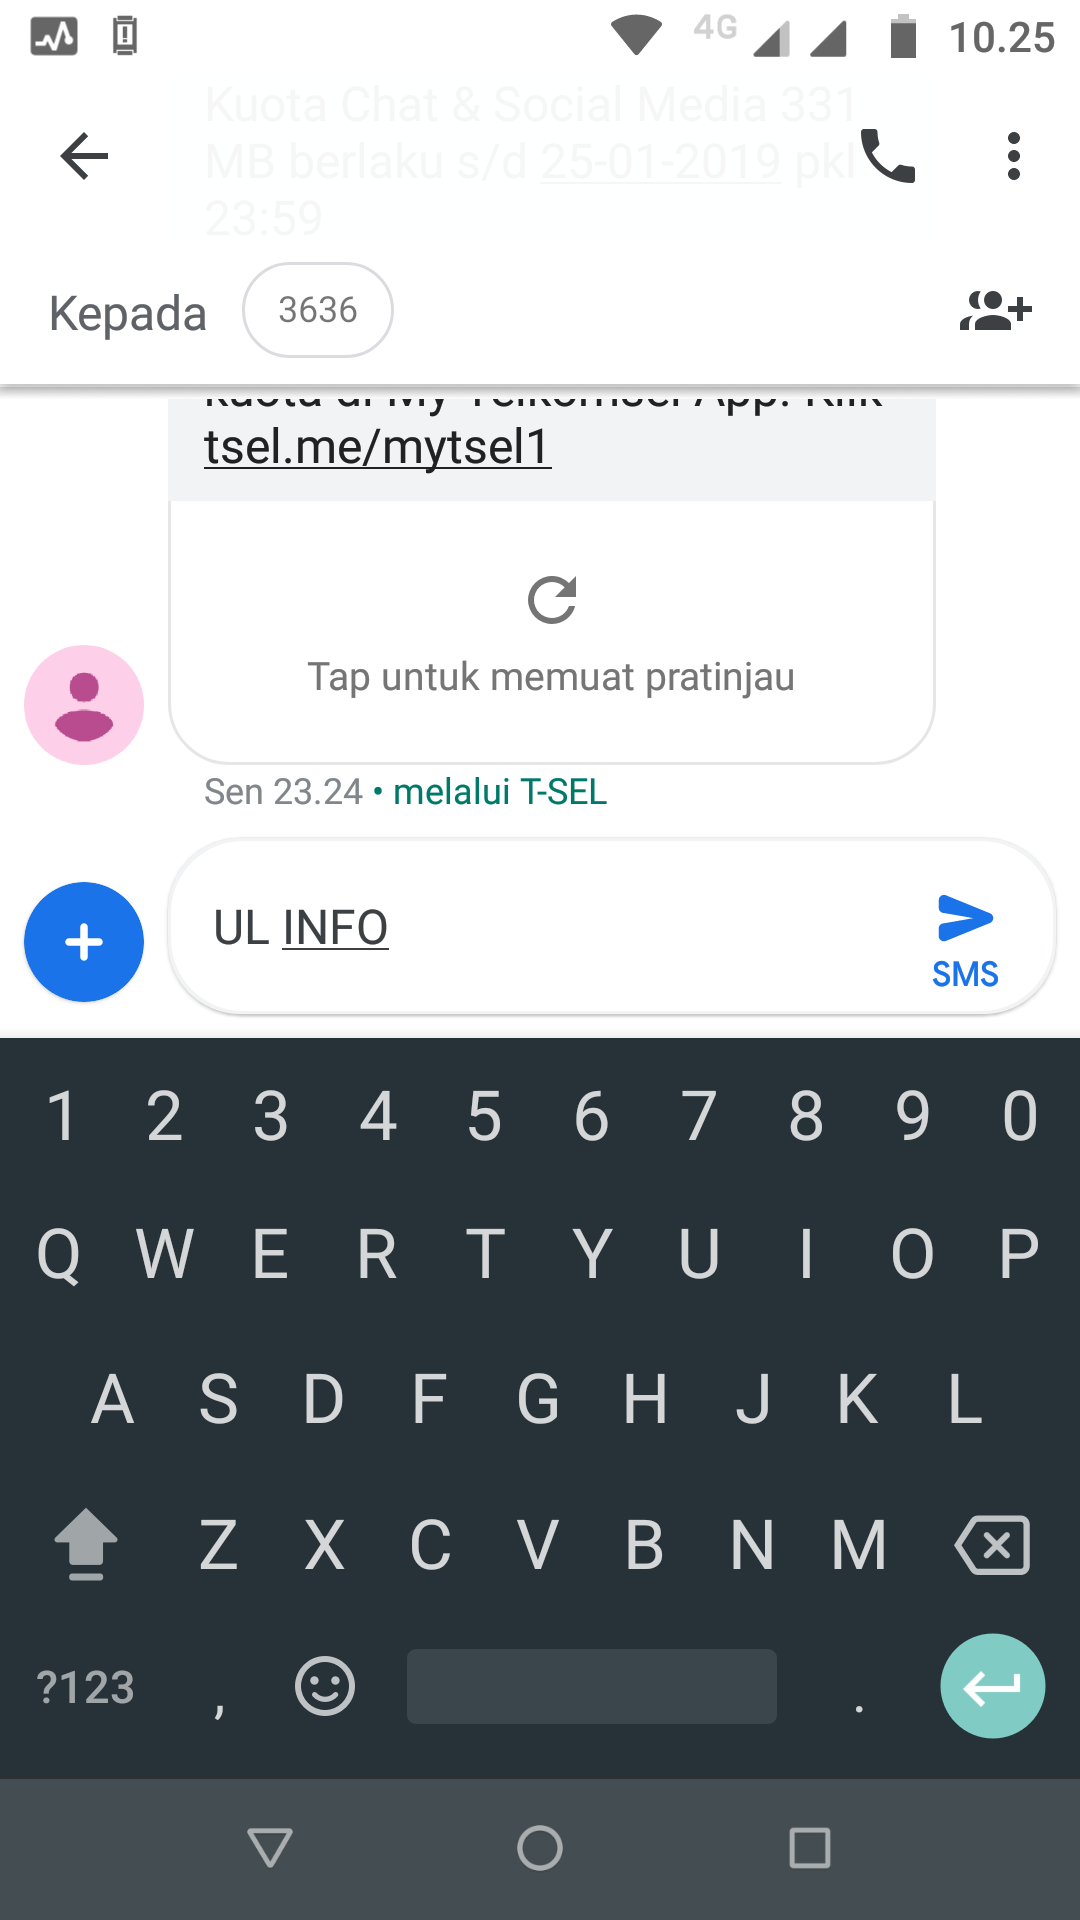 Cek kuota Telkomsel lewat SMS. (Screenshot)